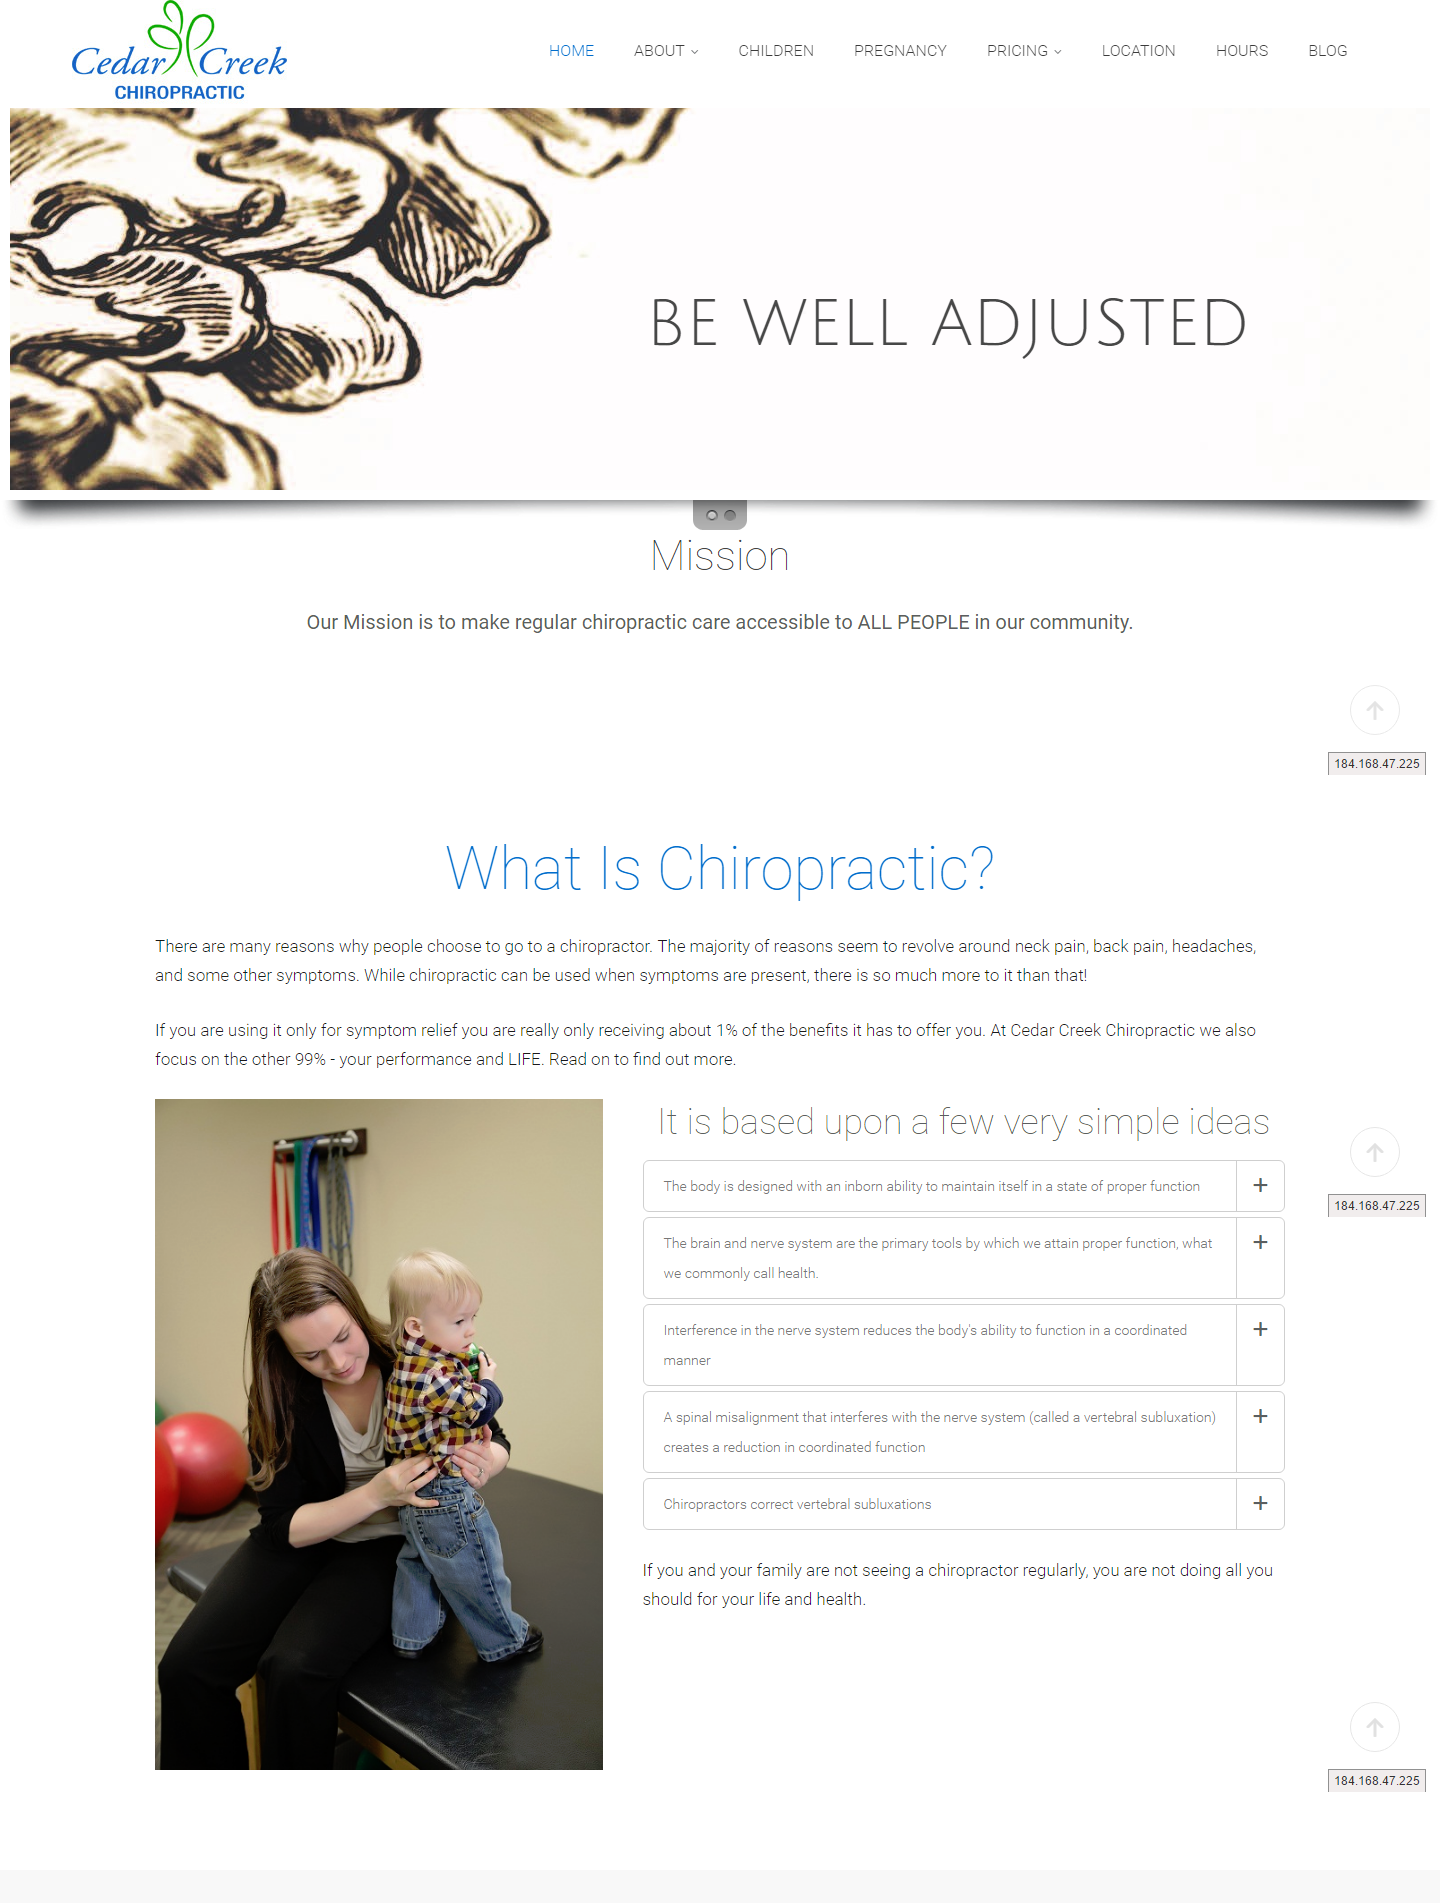 cedar creek chiro web design